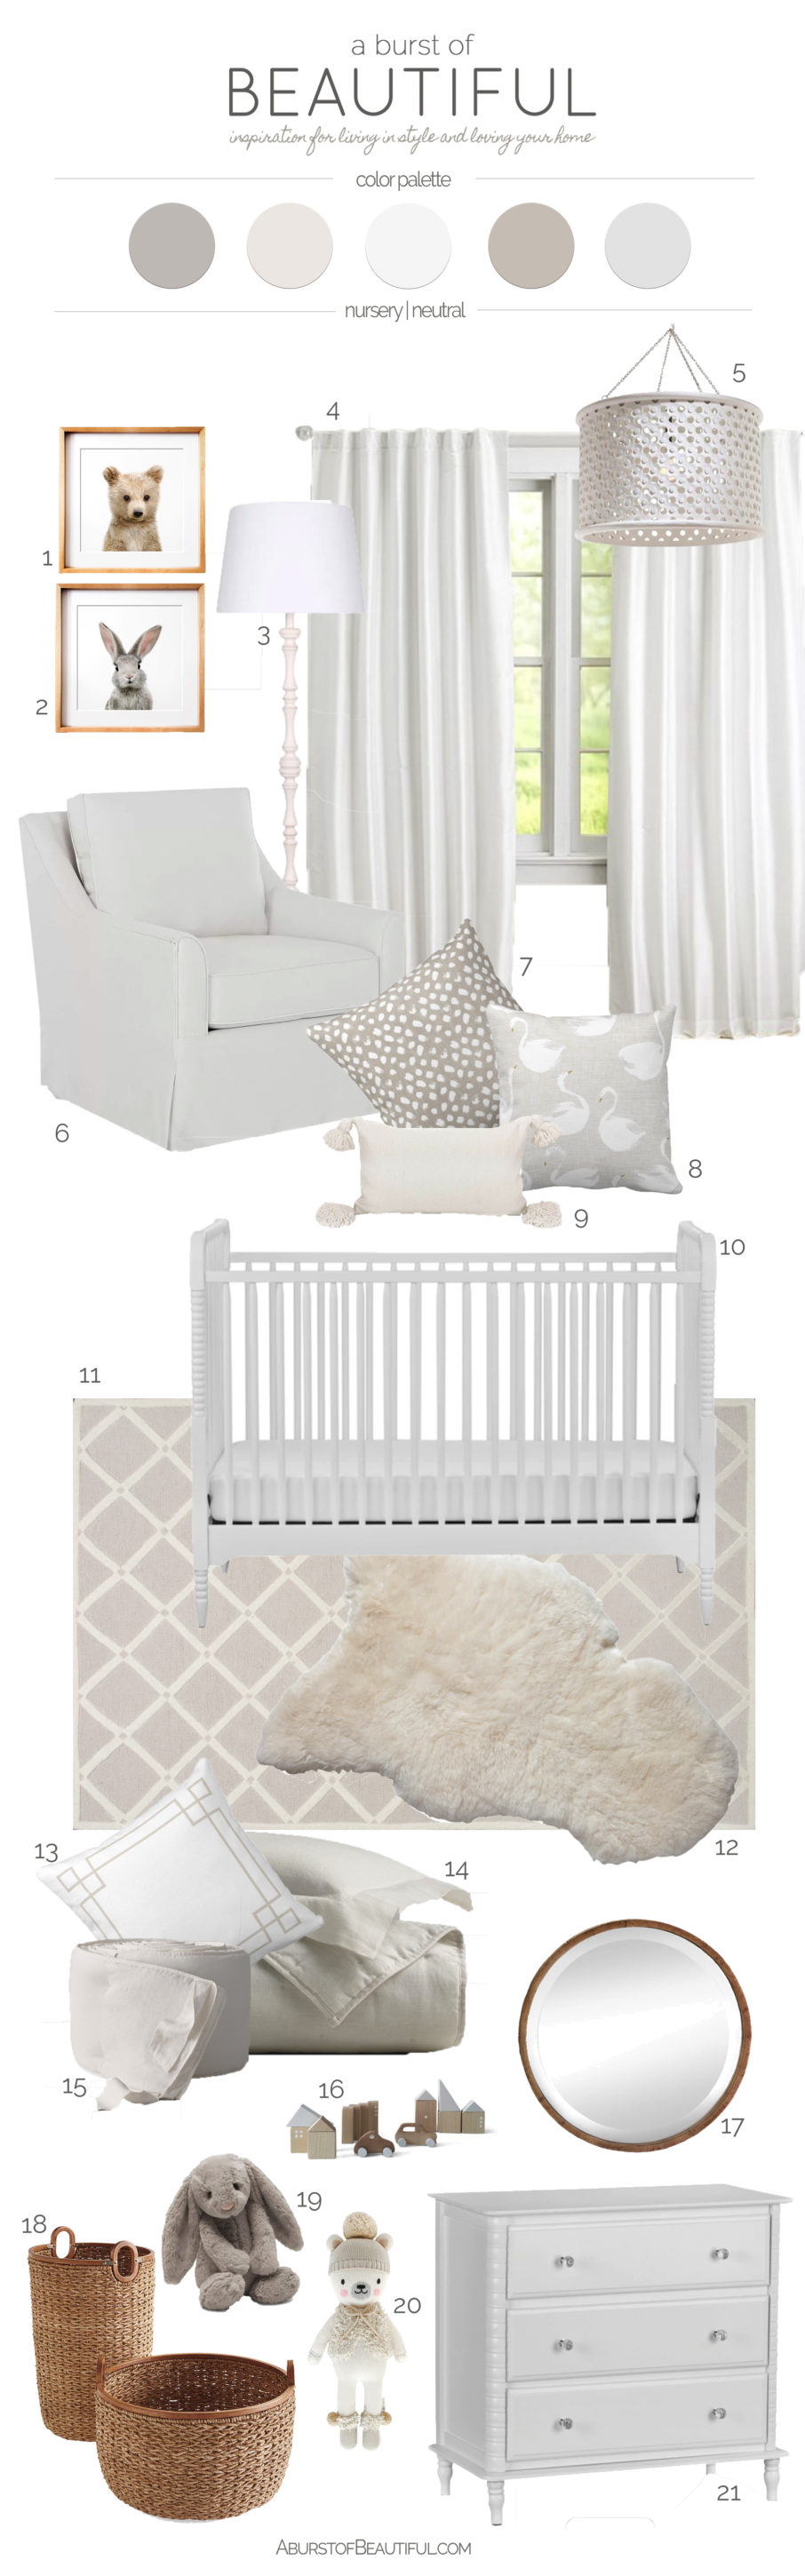 Designing a gender neutral nursery with furniture in classic designs and incorporating simple accessories will easily allow the addition of color and pattern to be added once your little one arrives.